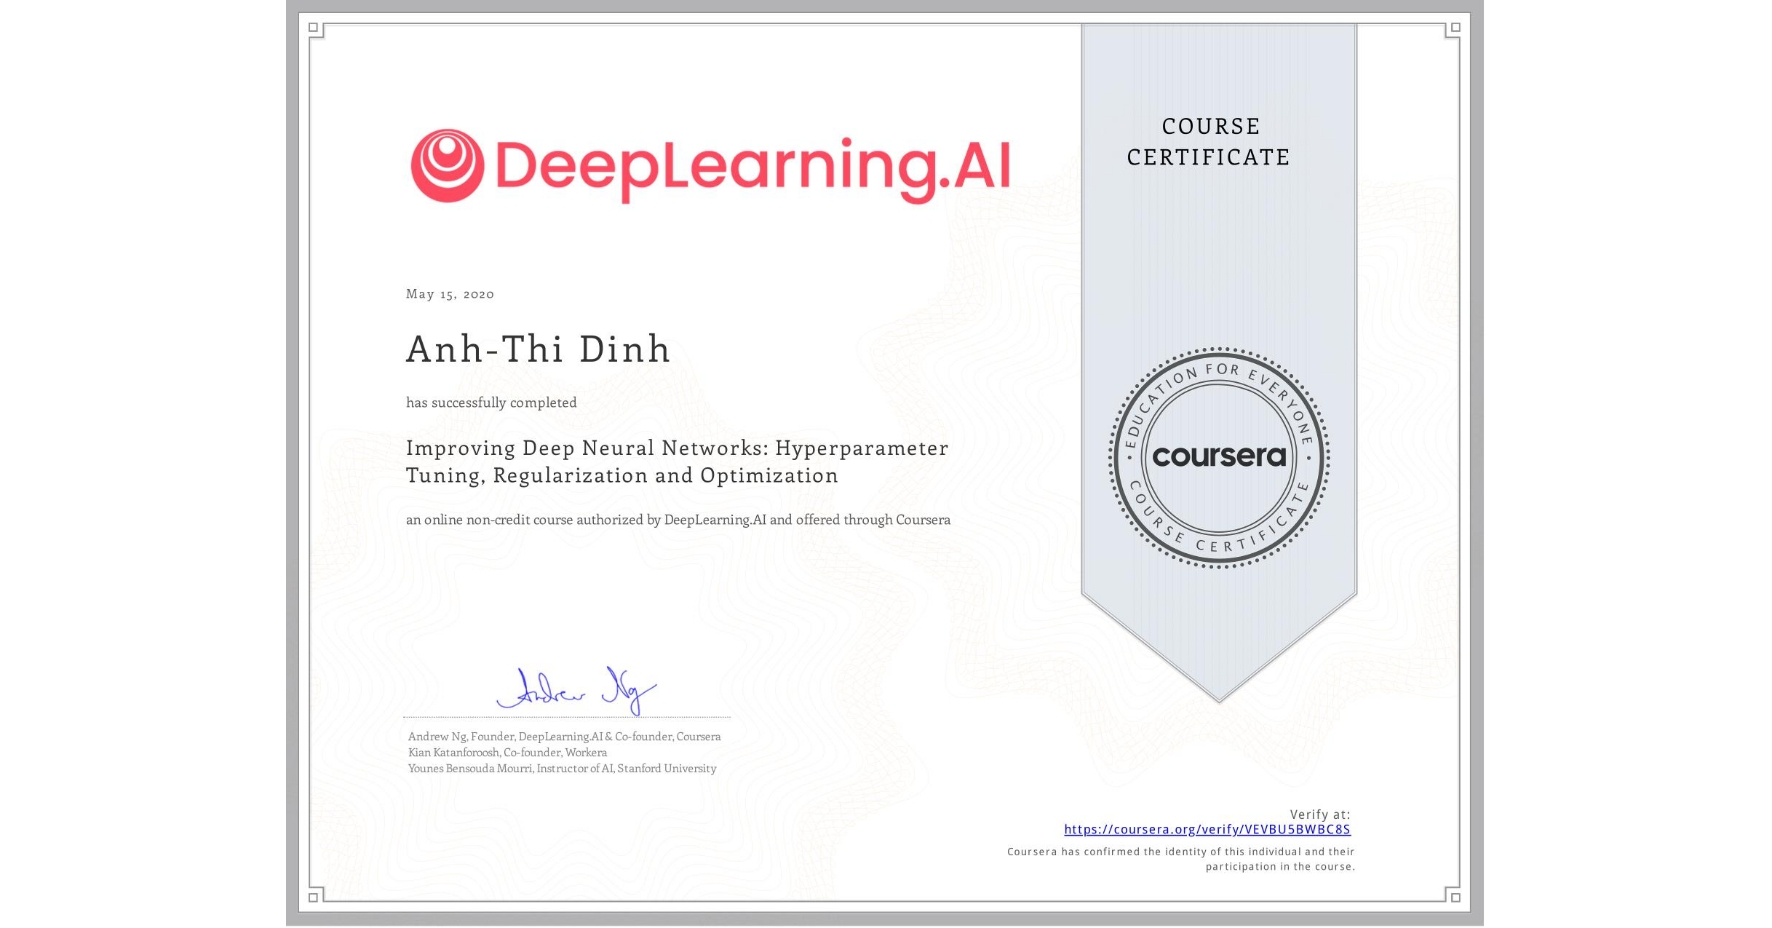 View certificate for Anh-Thi Dinh, Improving Deep Neural Networks: Hyperparameter tuning, Regularization and Optimization, an online non-credit course authorized by DeepLearning.AI and offered through Coursera